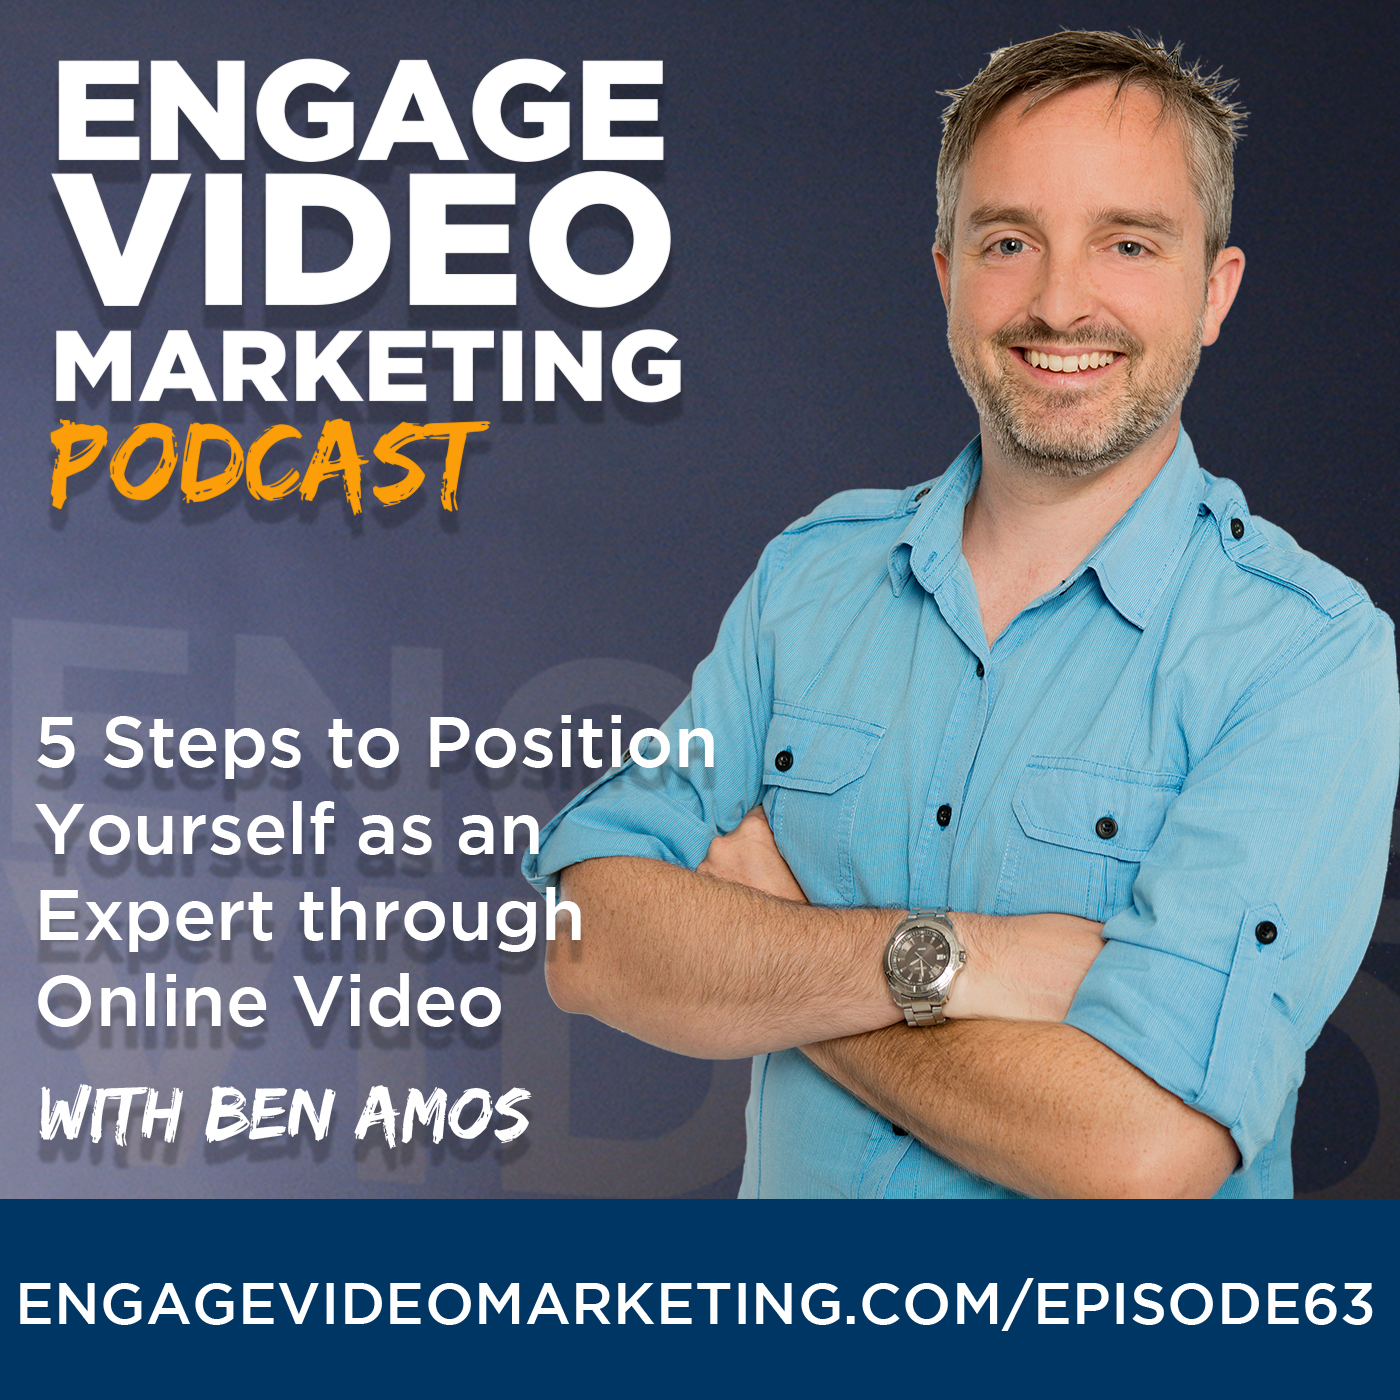 5 Steps to Position Yourself as an Expert through Online Video